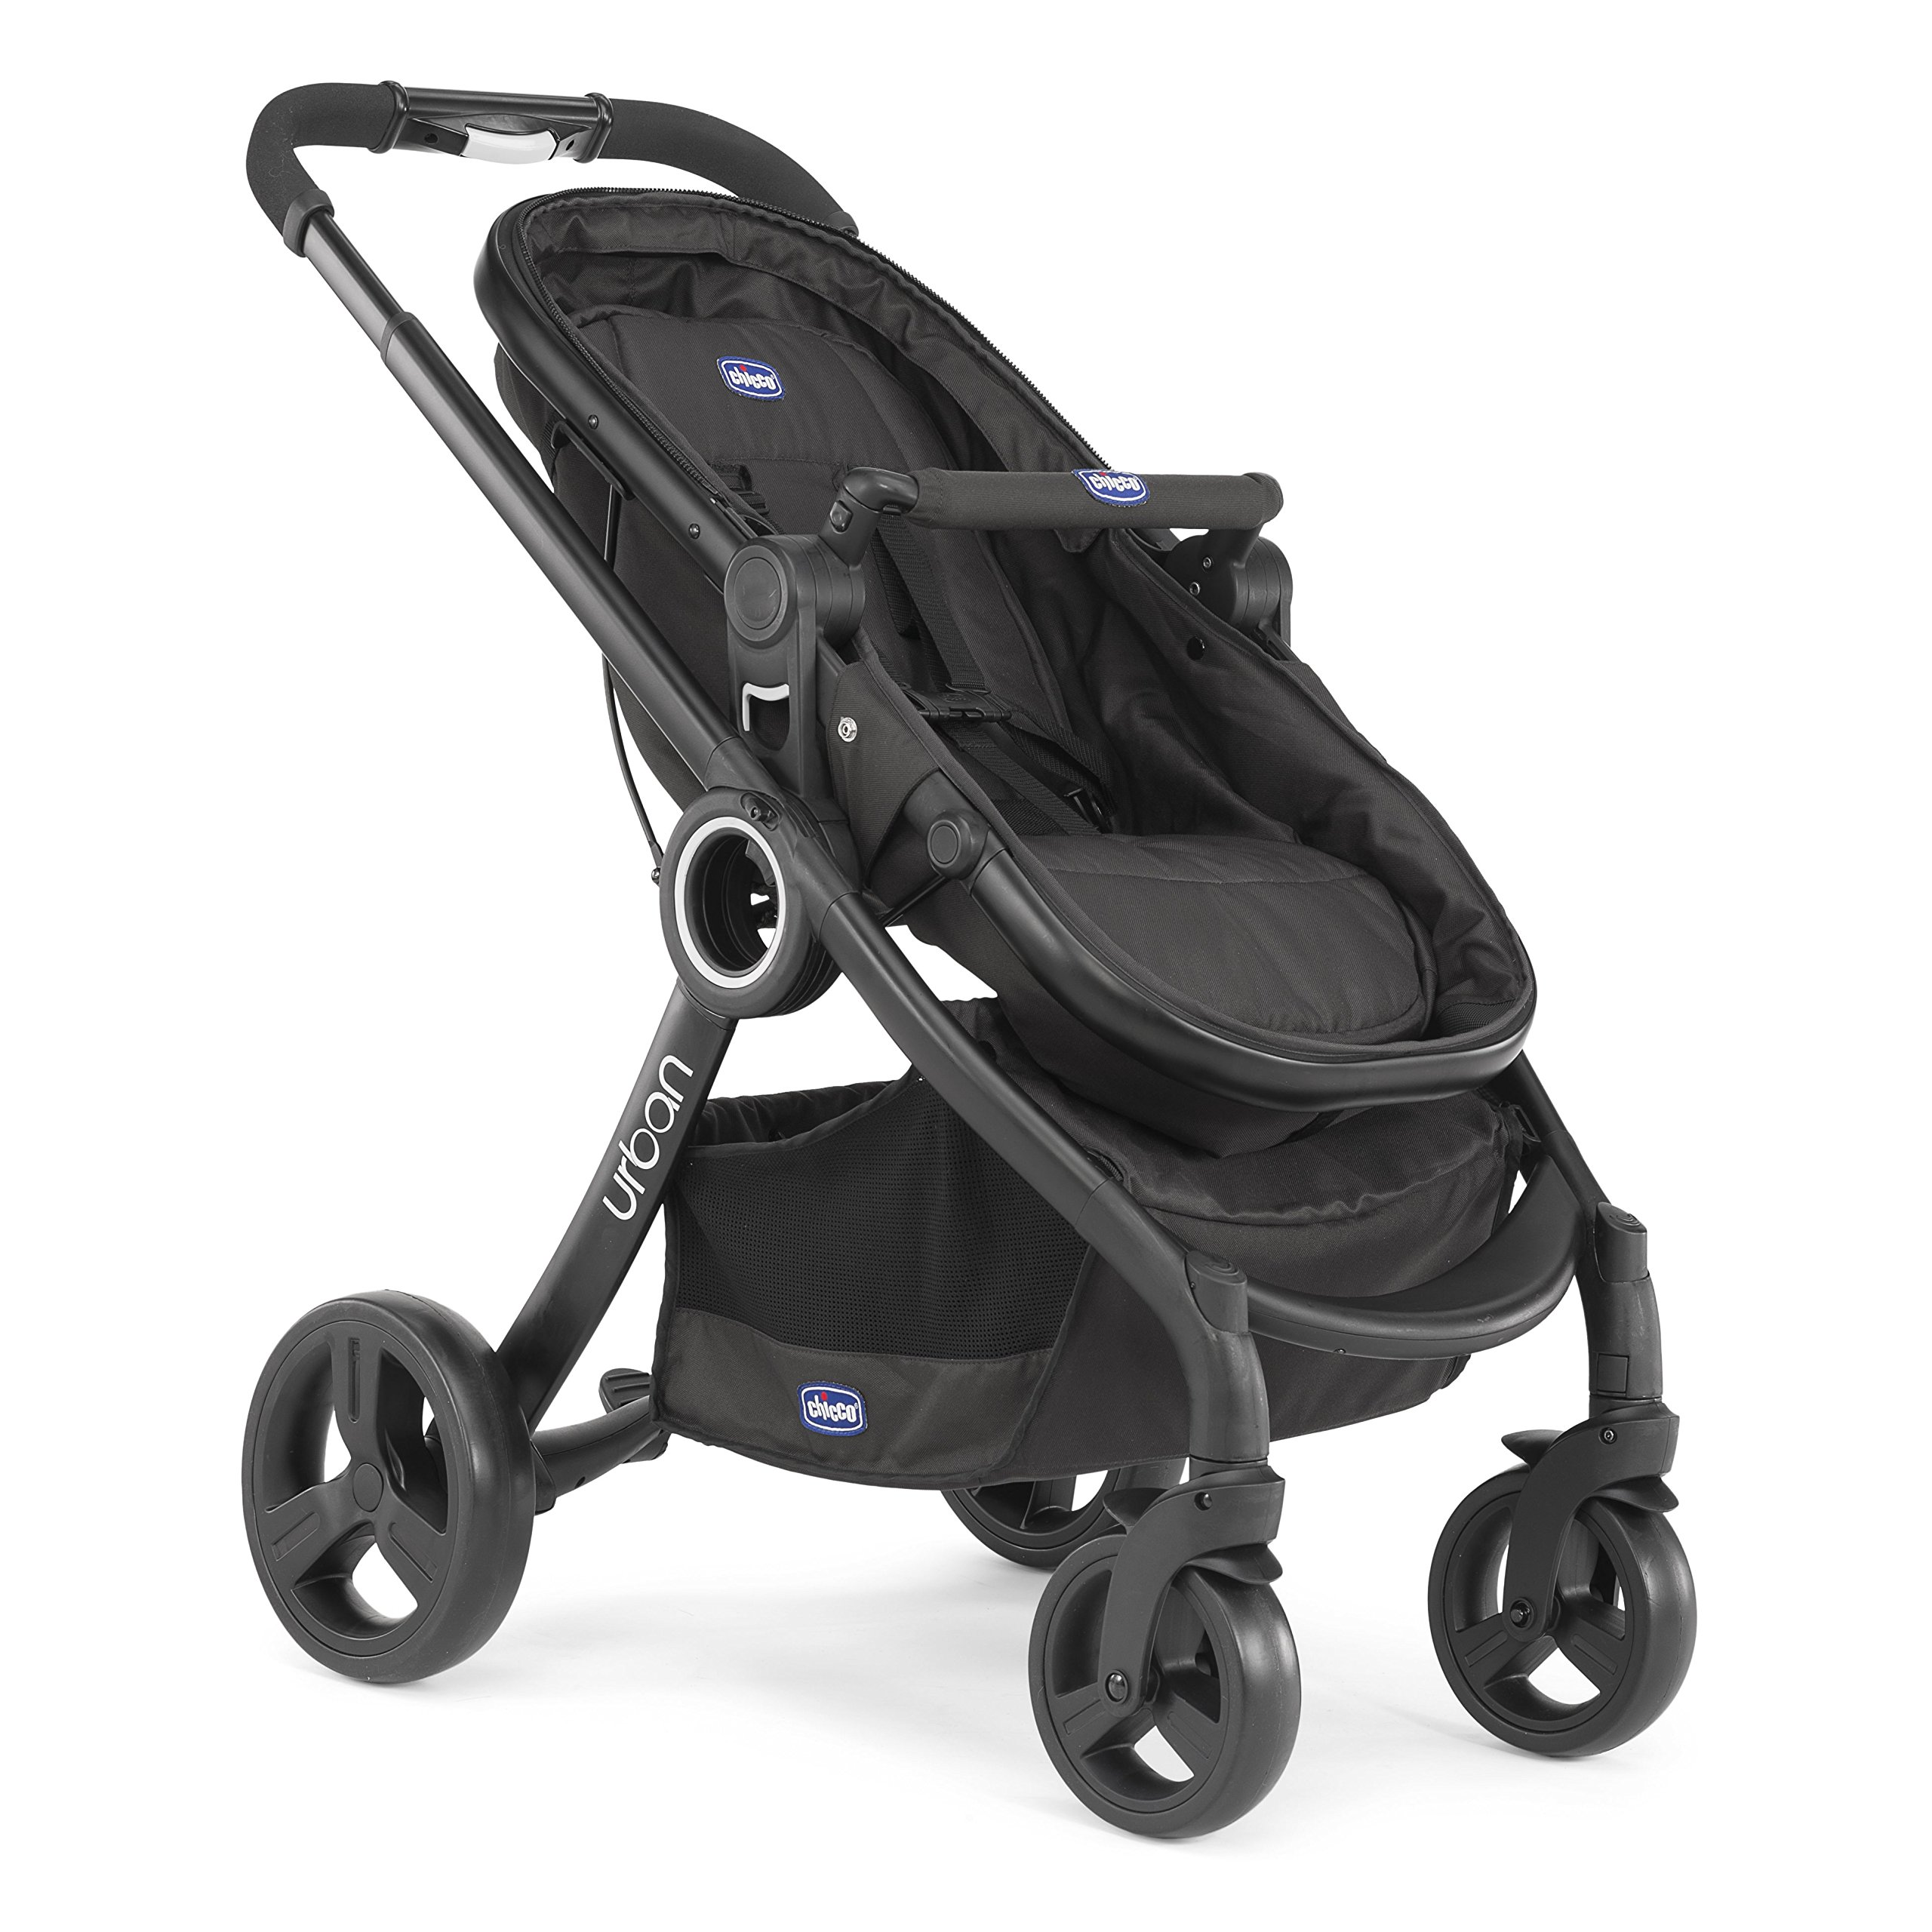 Chicco Urban Plus - Carrito transformable en capazo y silla de paseo, 7,6